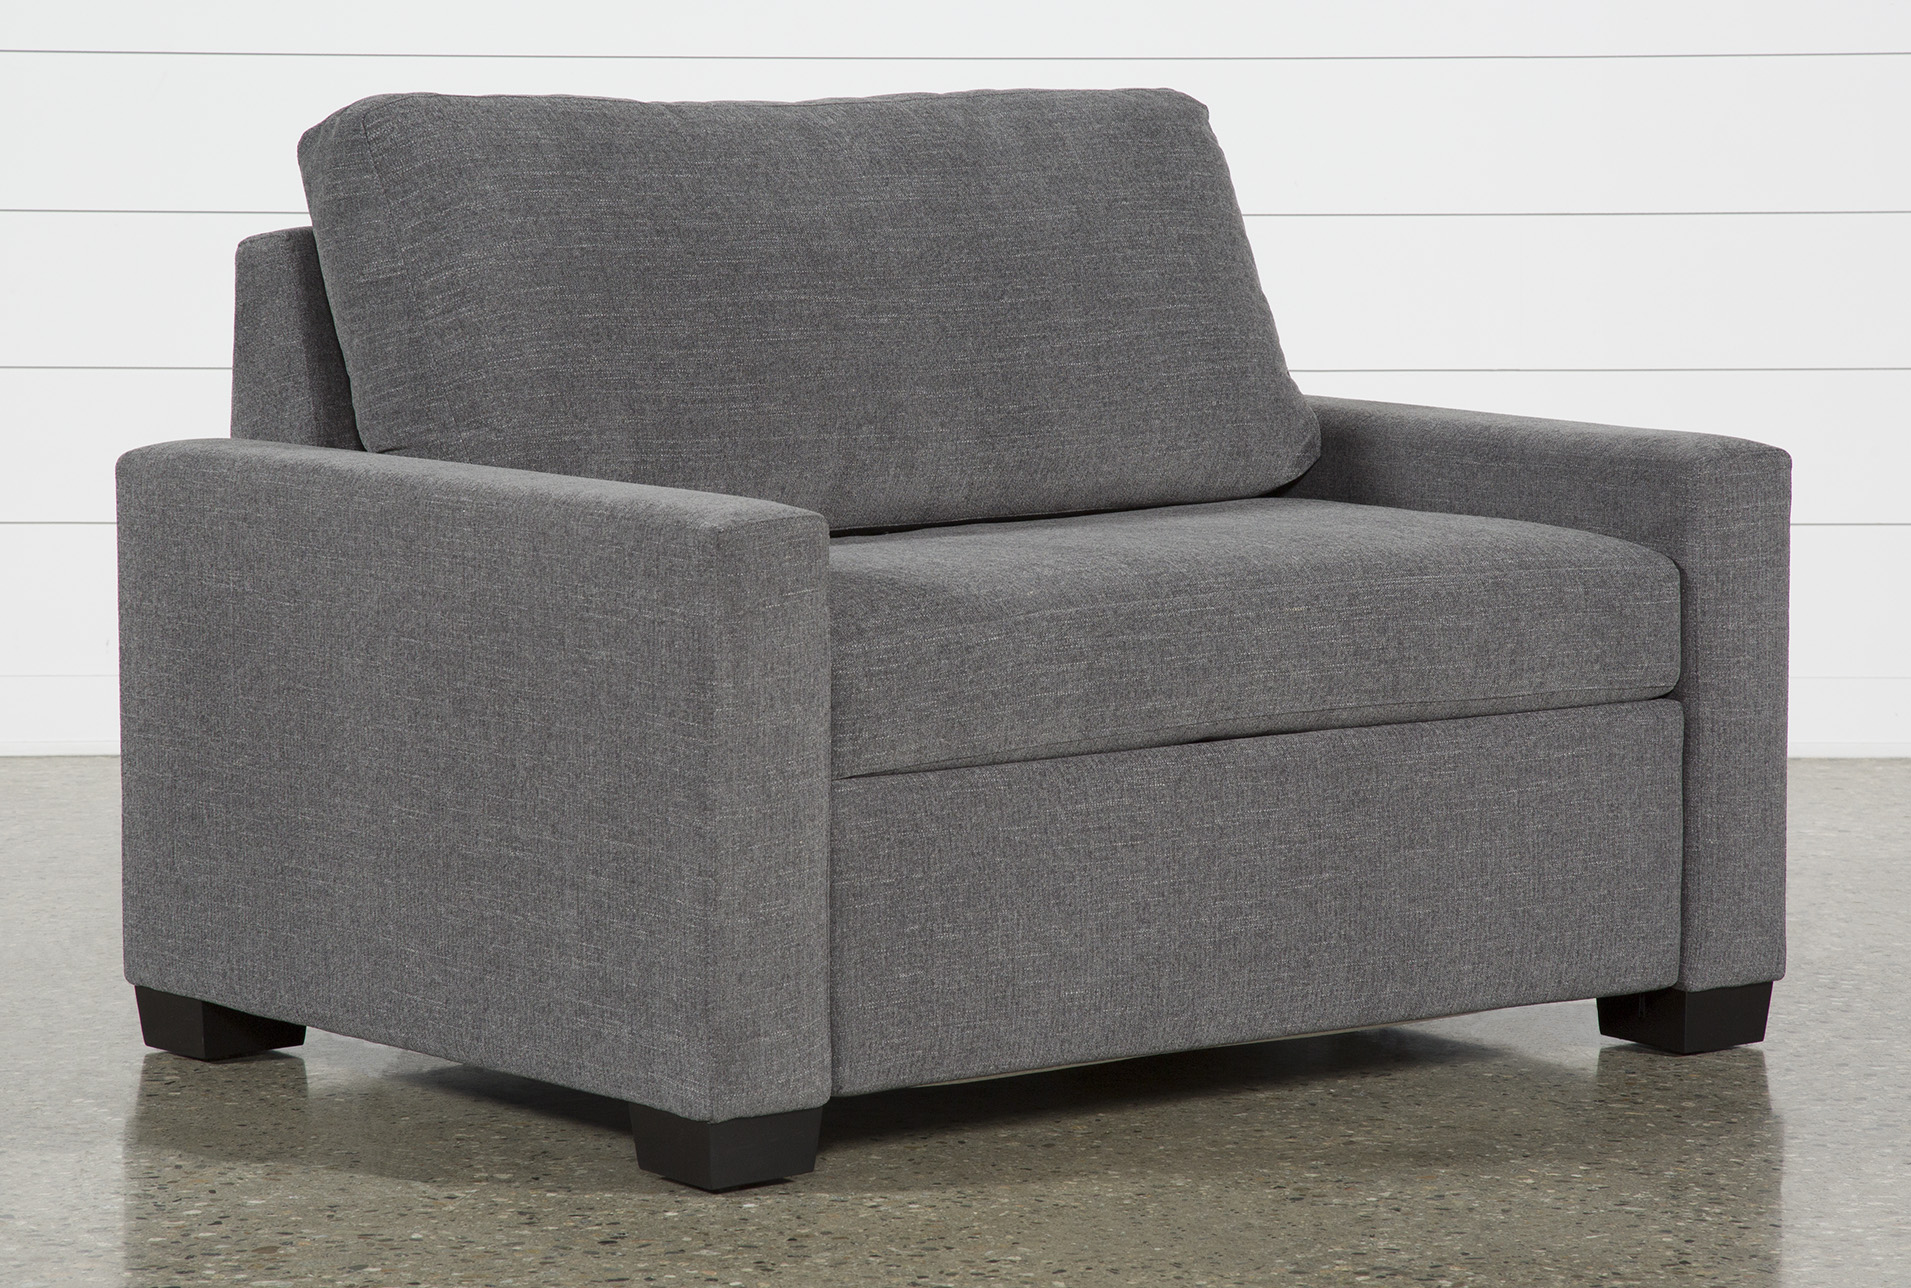 twin sofa beds sleeper sofas free assembly with delivery rh livingspaces com twin pull out sofa chair twin pull out sofa chair